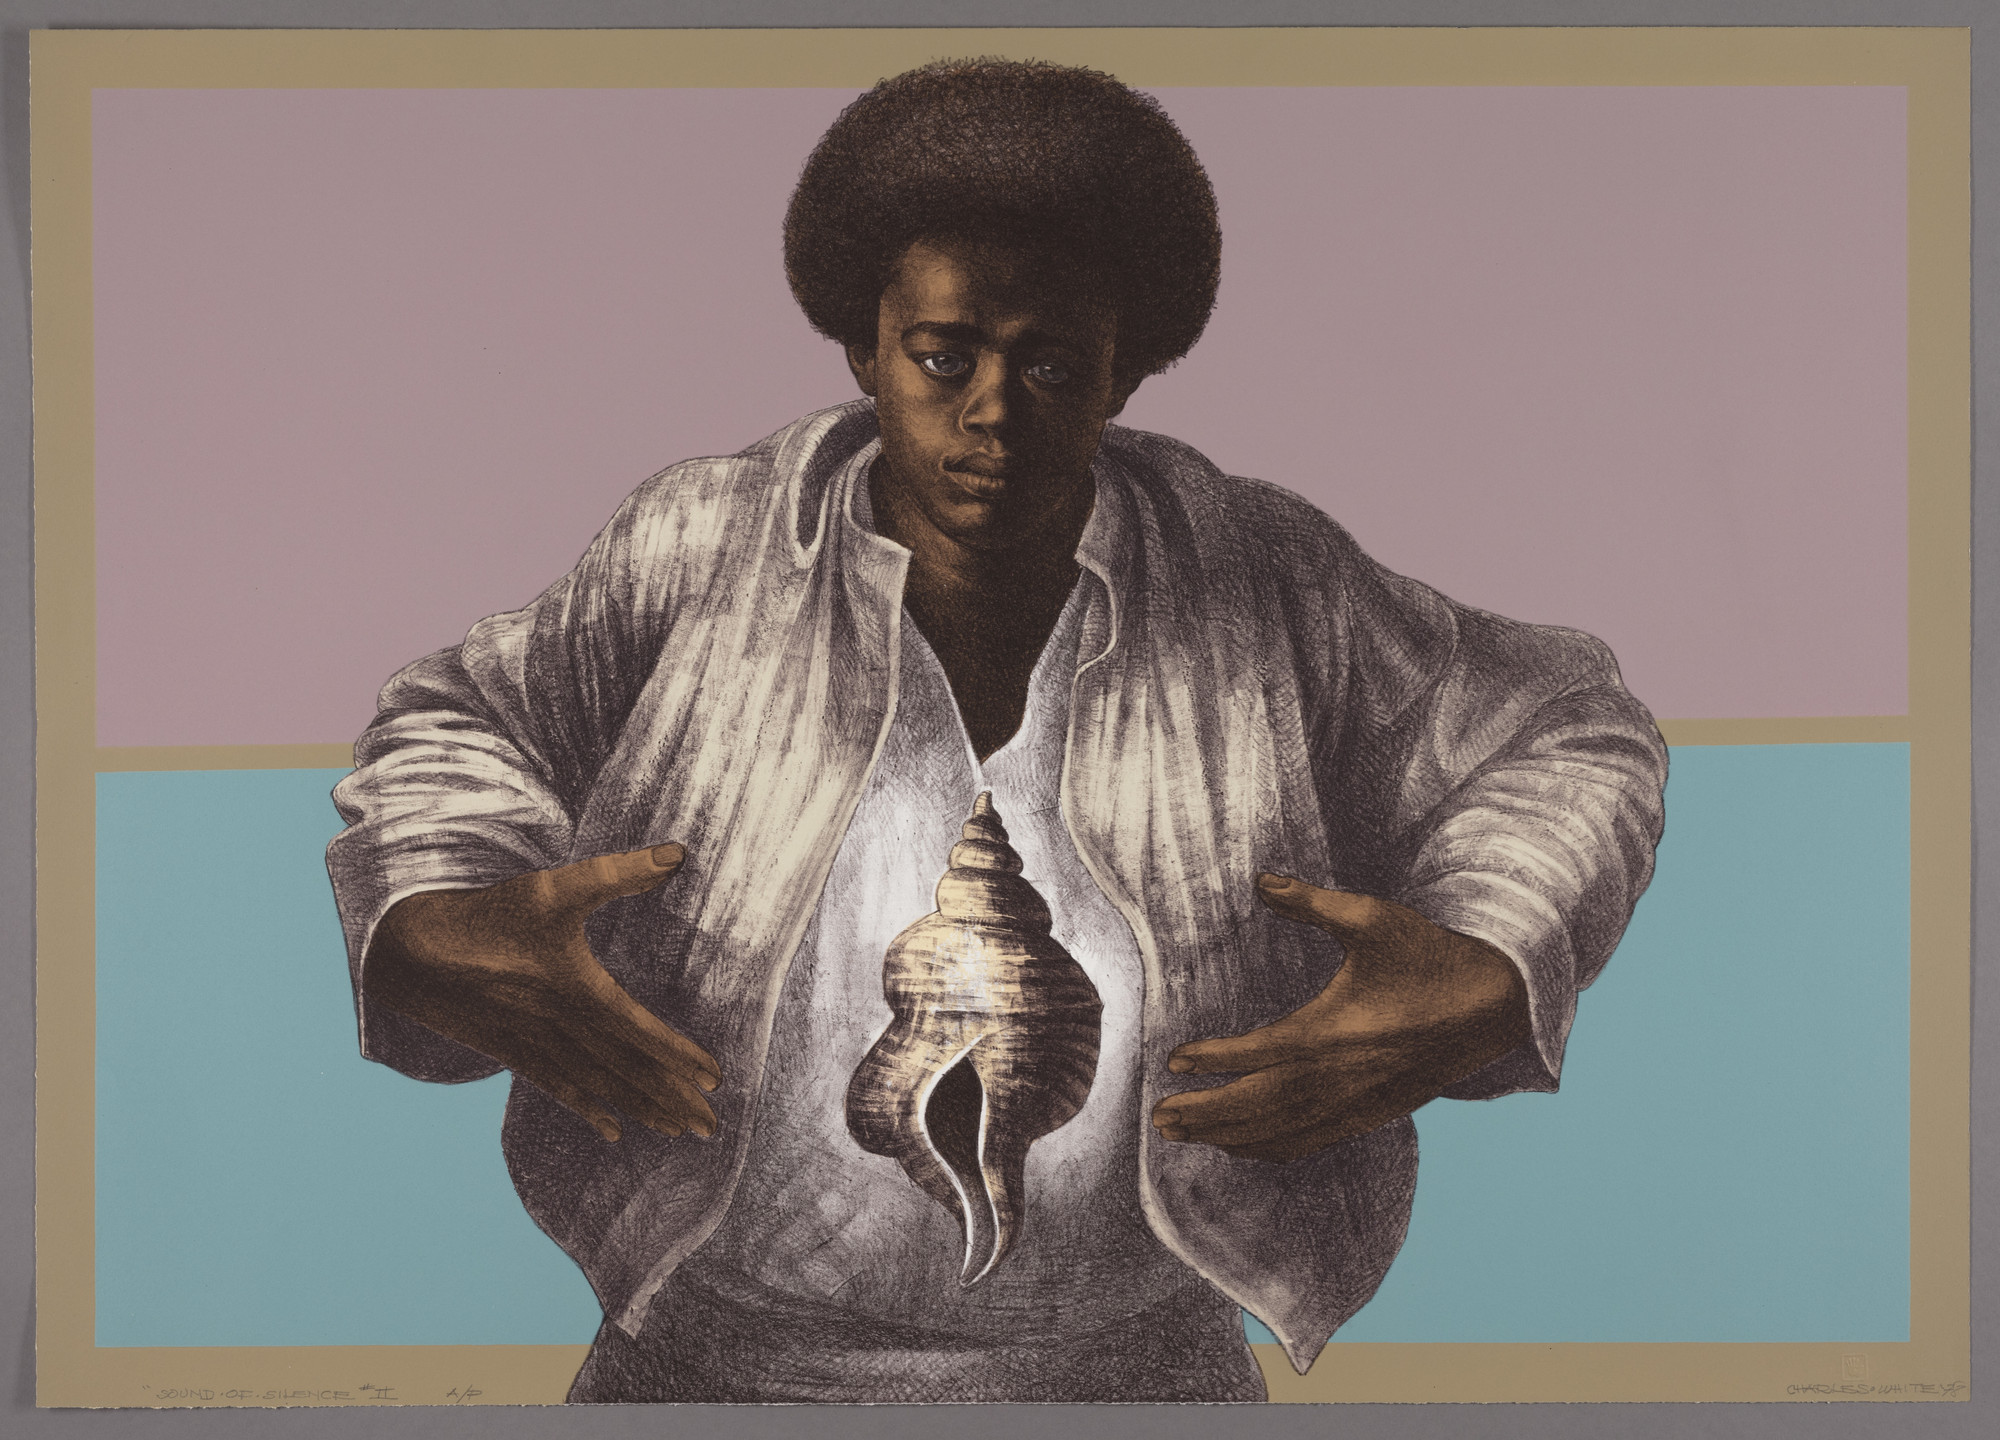 "Charles White. _Sound of Silence_. 1978. Lithograph, 25 1/8 x 35 5/16"" (63.8 x 89.7 cm). The Art Institute of Chicago, Margaret Fisher Fund. © The Charles White Archives/ © The Art Institute of Chicago"